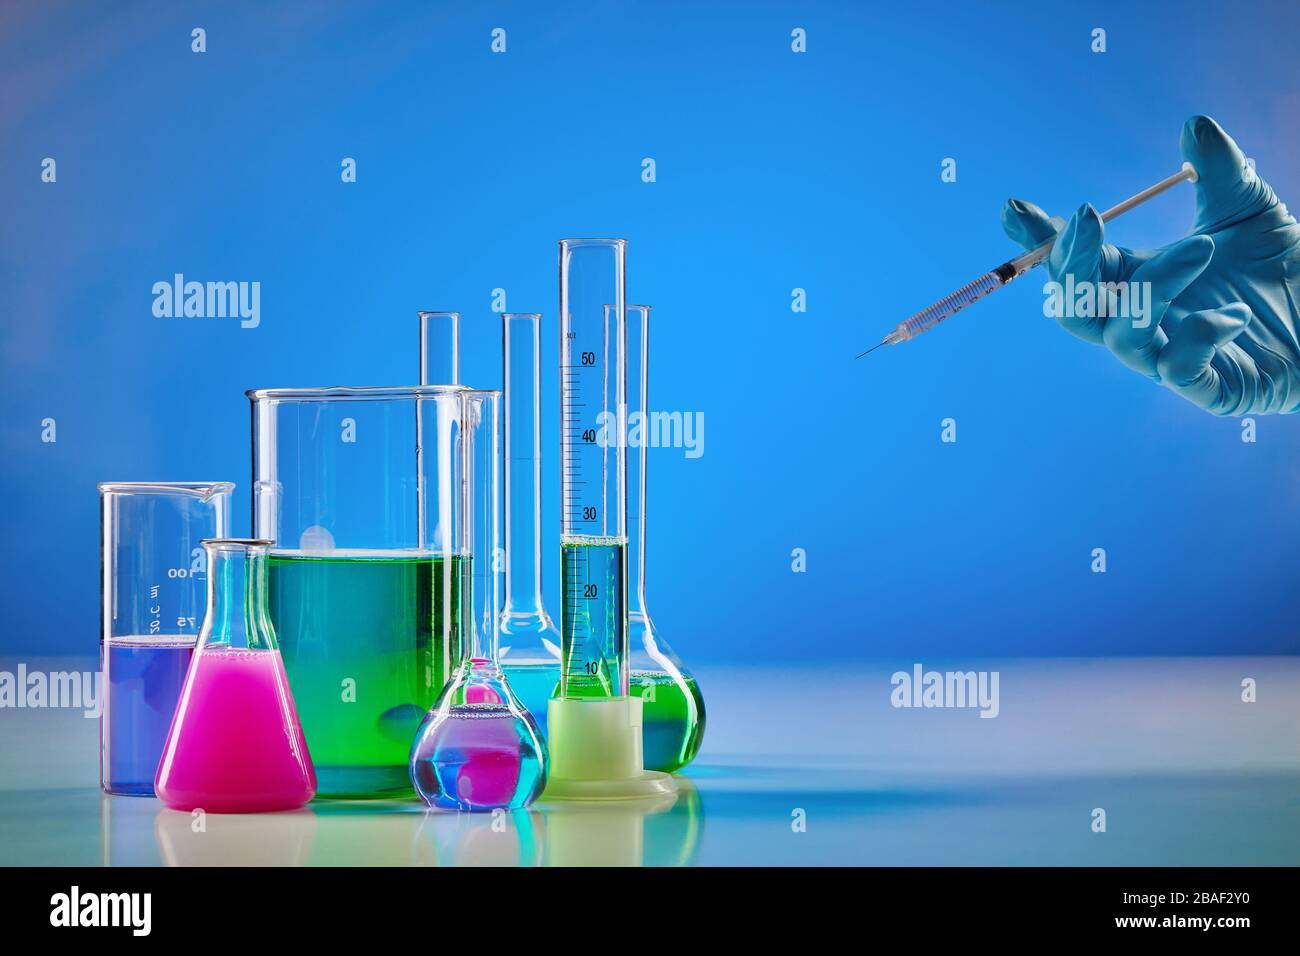 Hand in disposable glove holding syringe. Colorful chemical reagents in beakers, medical flasks and measuring cylinder, blue background. Coronavirus, Stock Photo